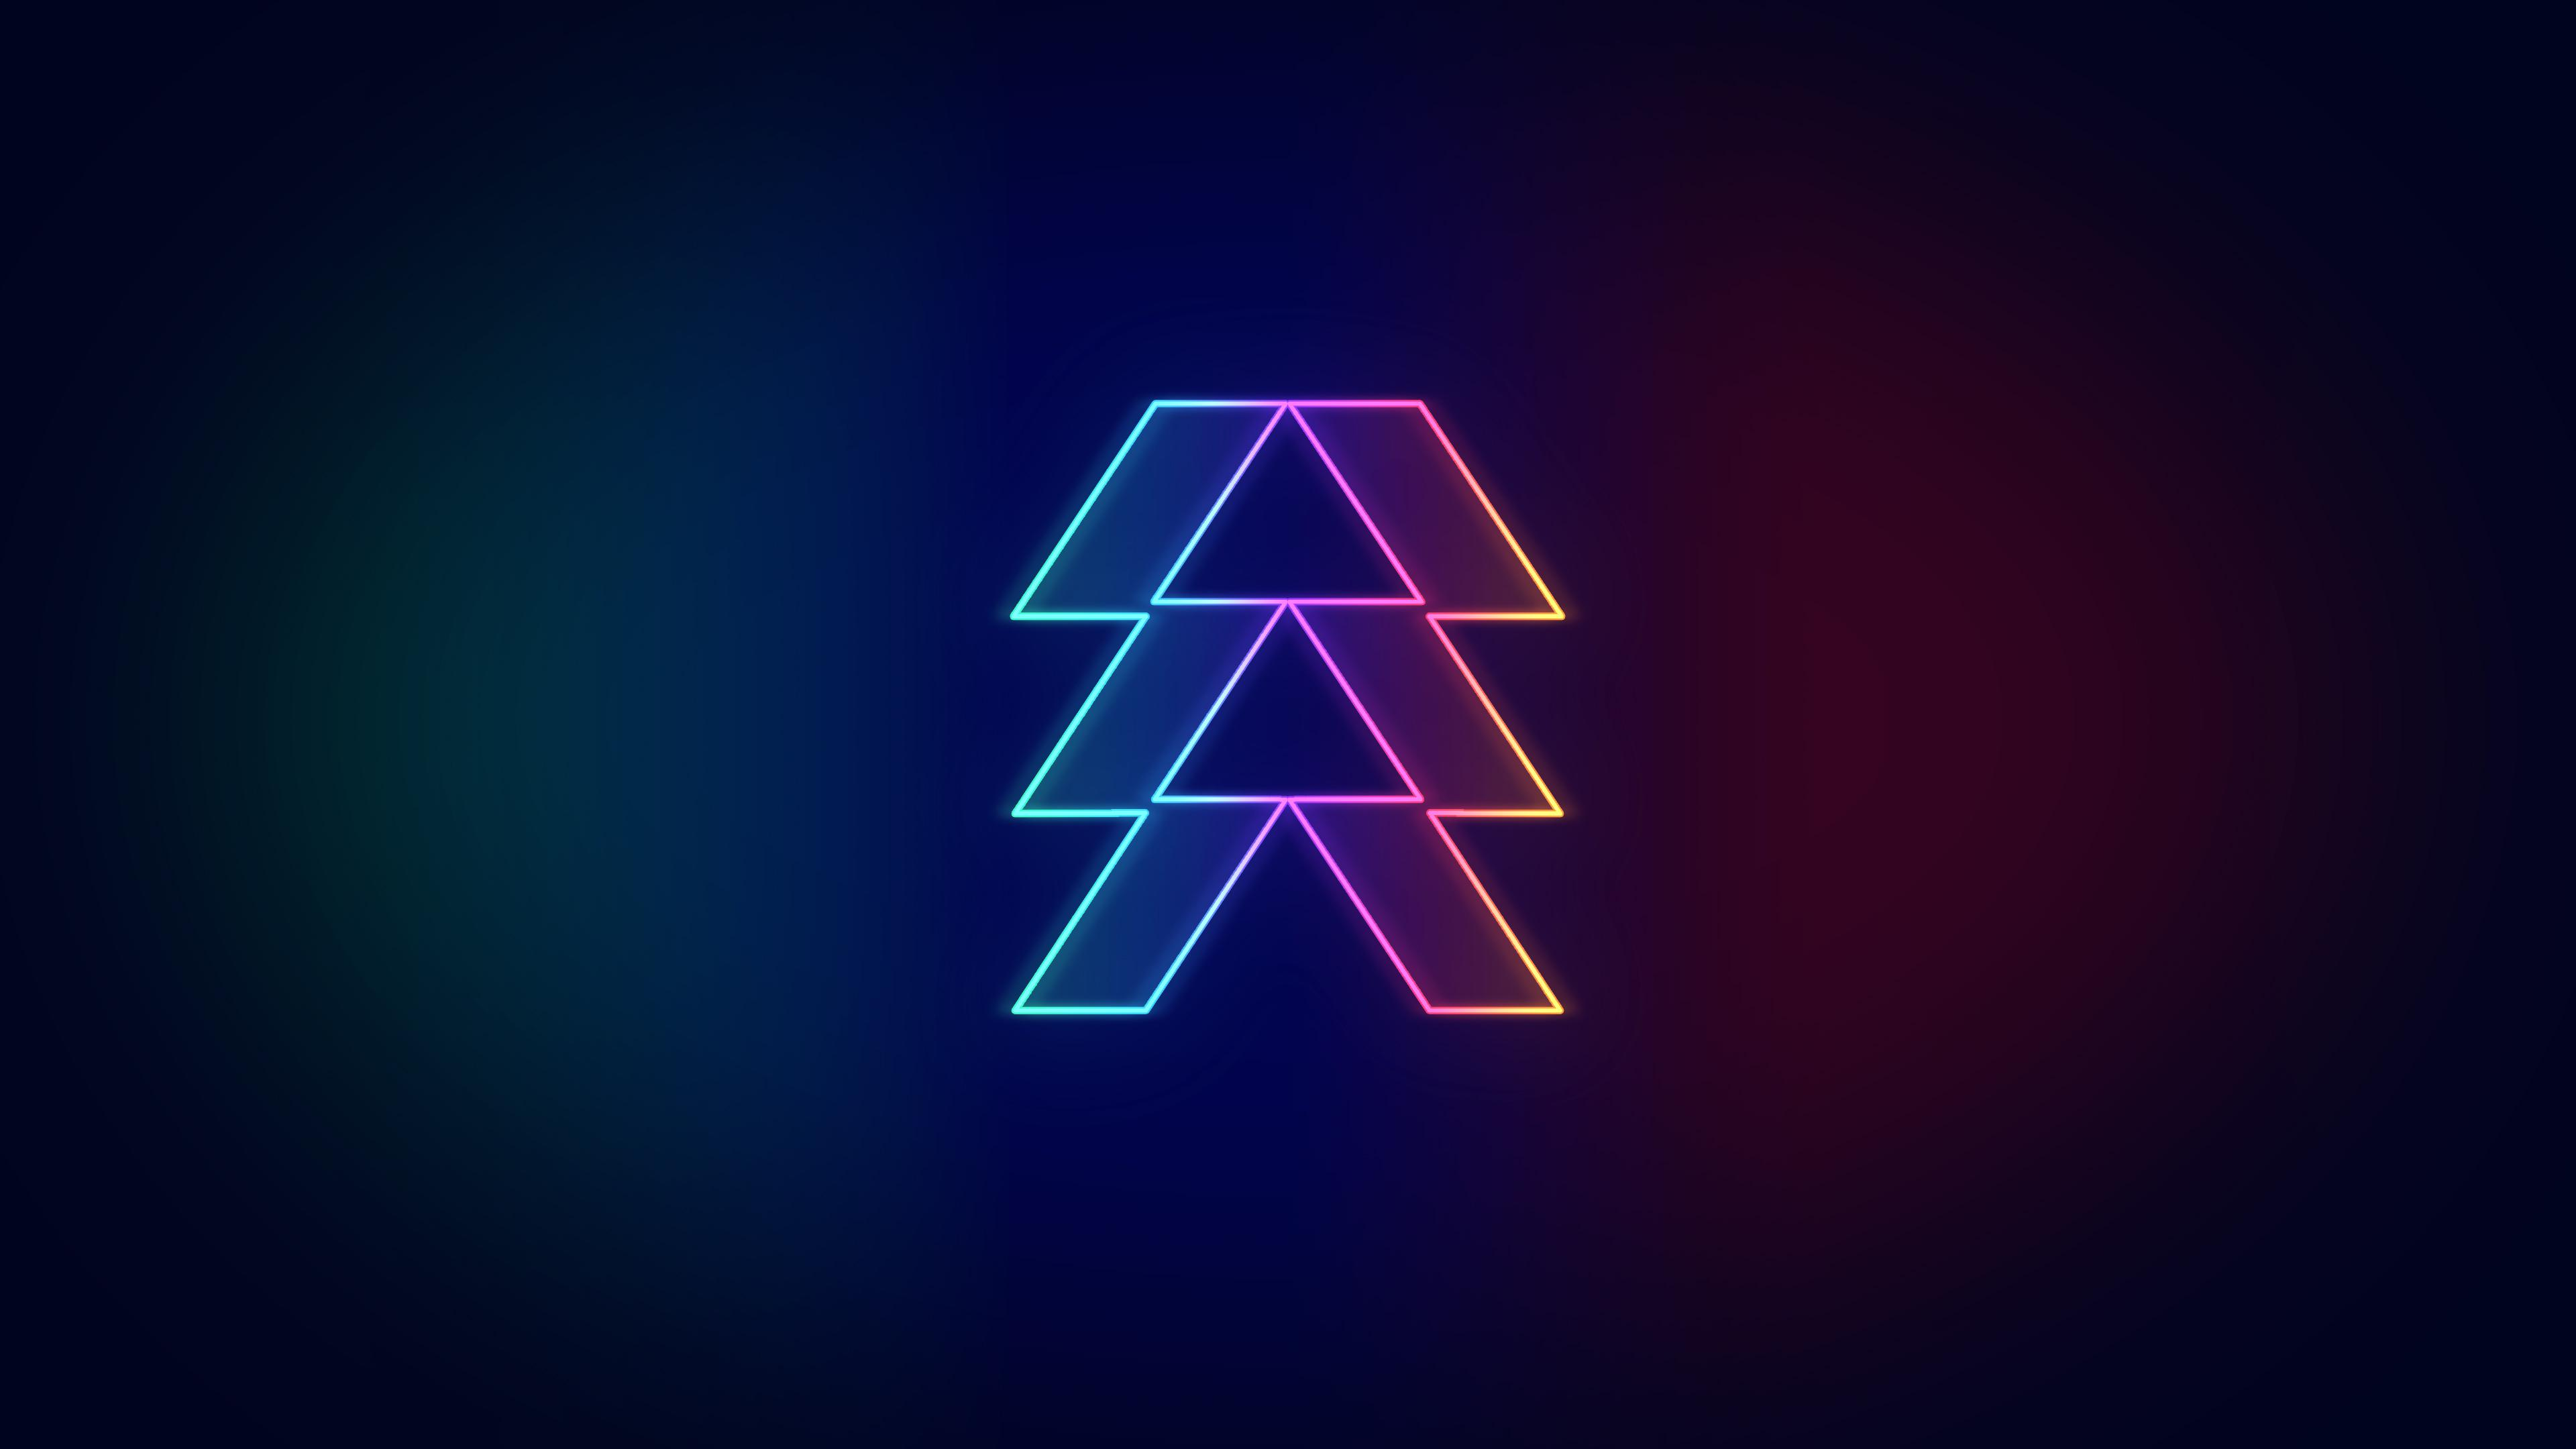 The best quality and size only with us! Neon hunter logo wallpaper 3840 x 2160 : destiny2